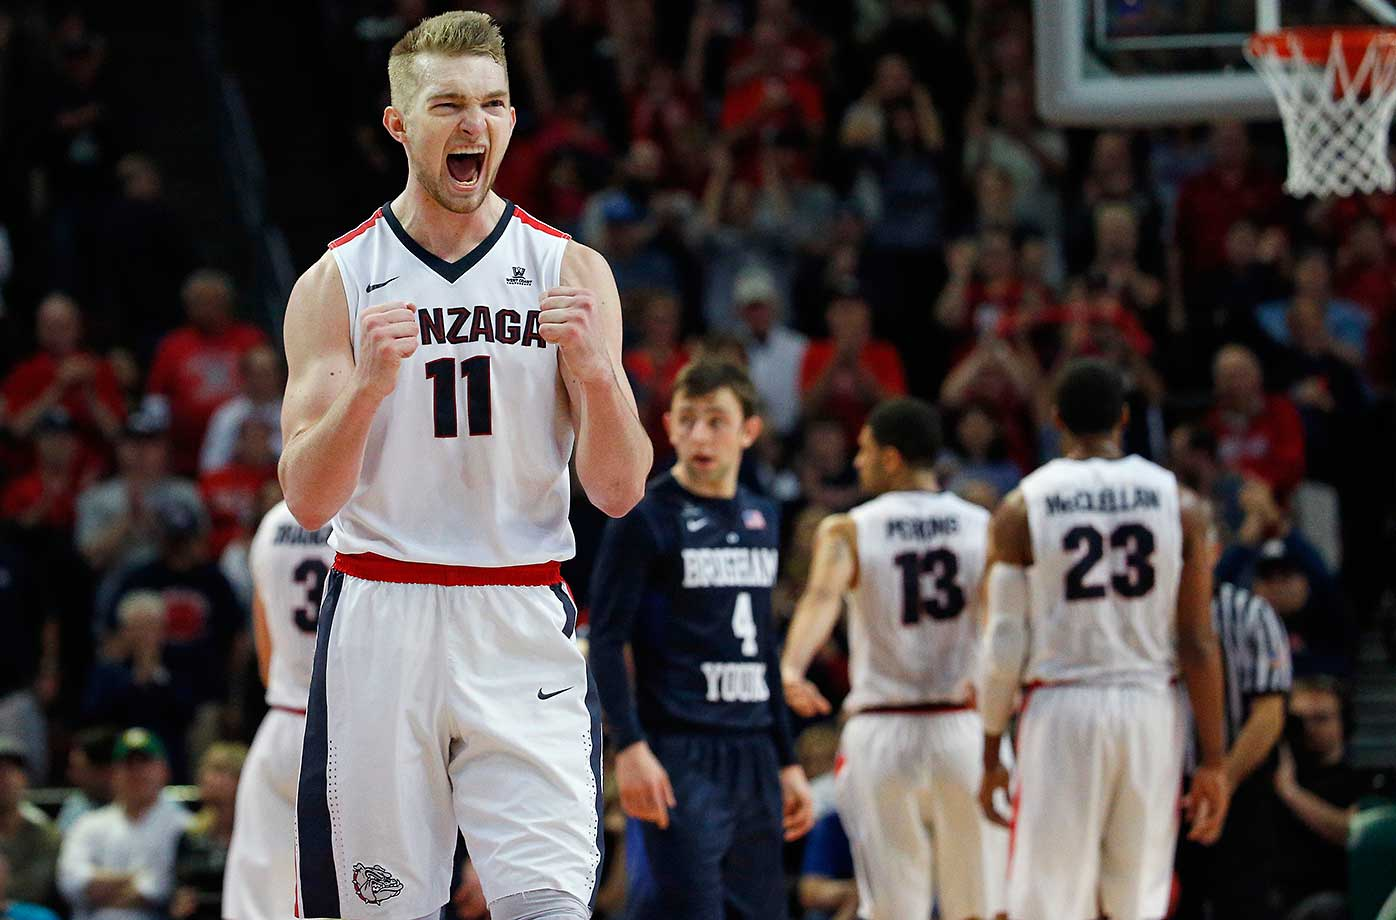 Gonzaga forward Domantas Sabonis celebrates as his team leads BYU in the final seconds.